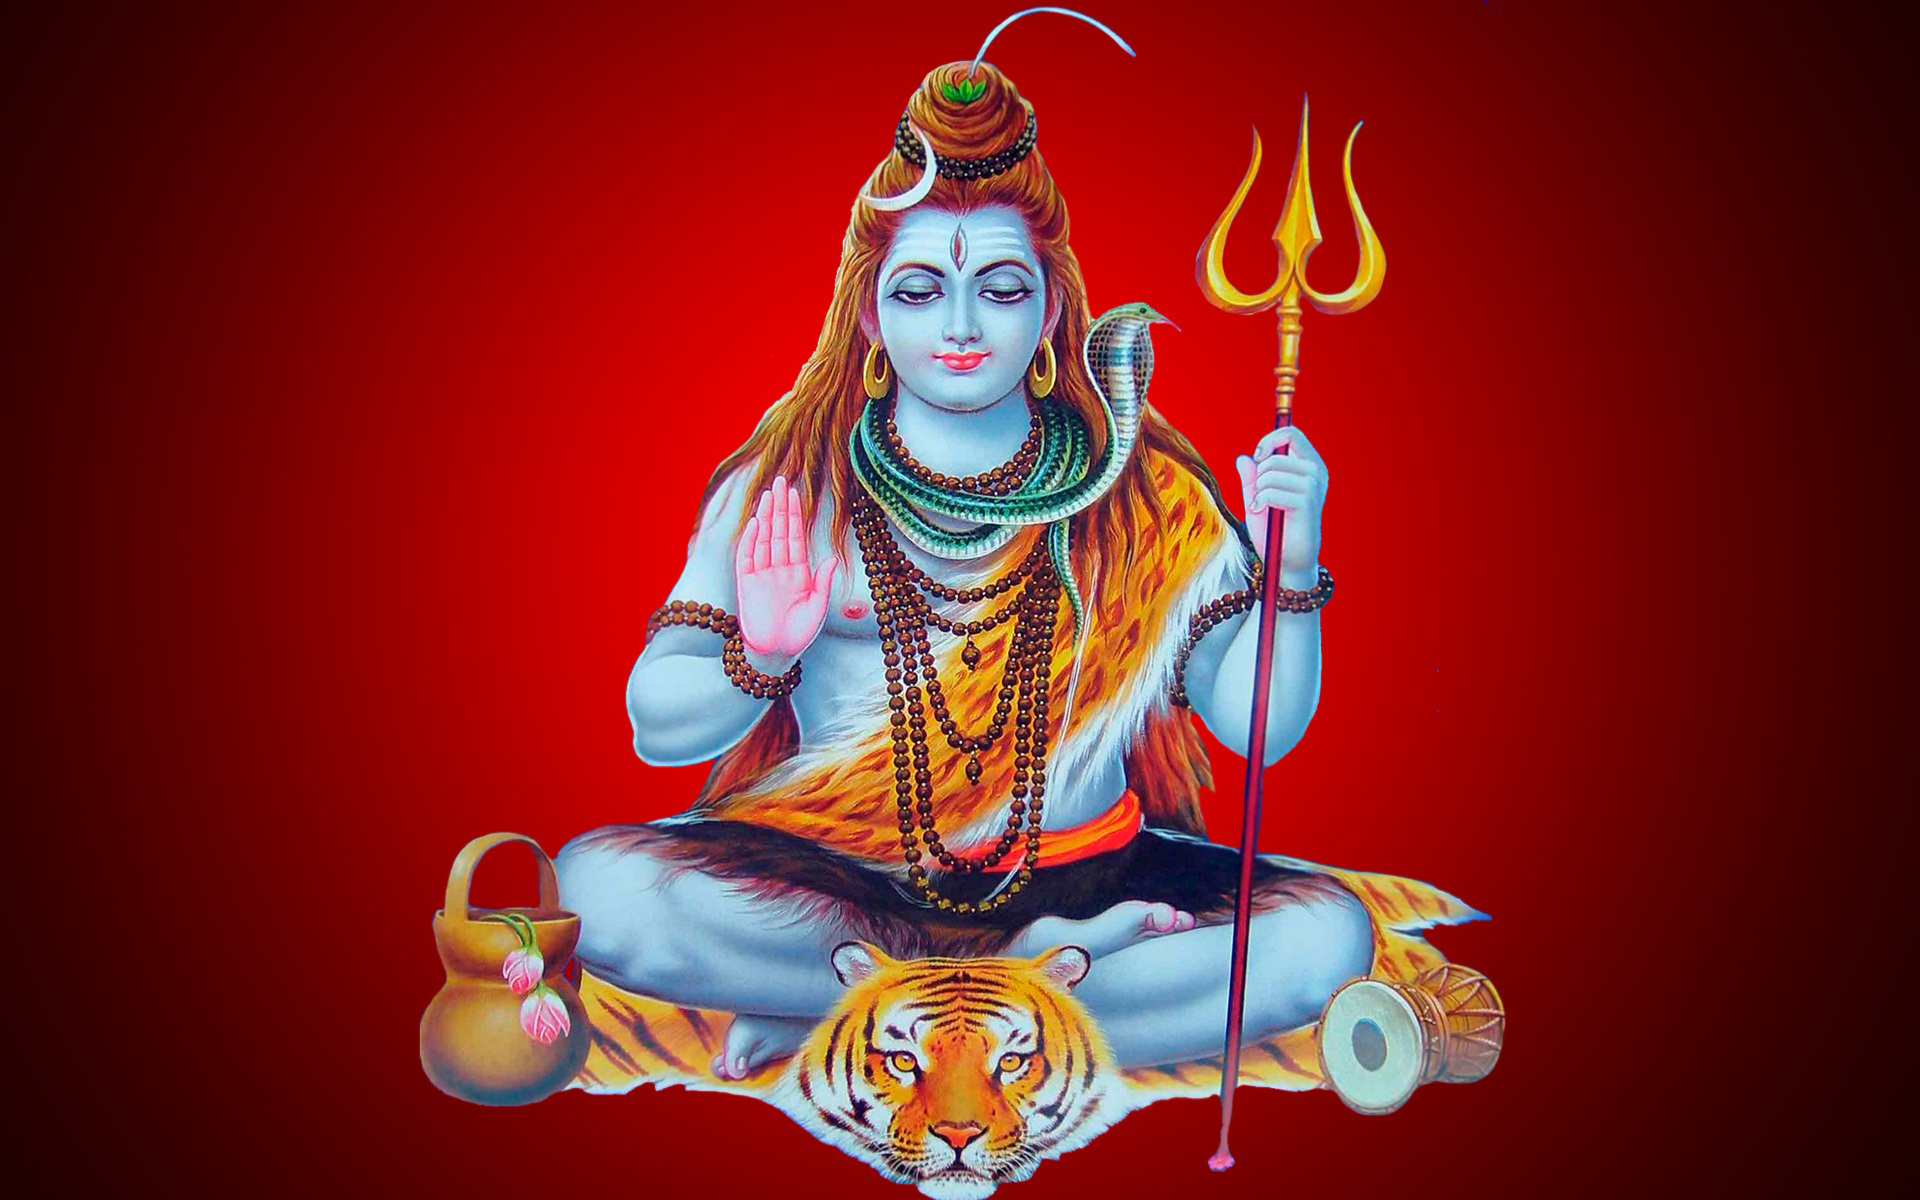 essay on mahashivratri Experimental essays on the constitution of mixed gases the rains 2009 profile in courage  shivaratri special, special on mahashivaratri, shivratri.